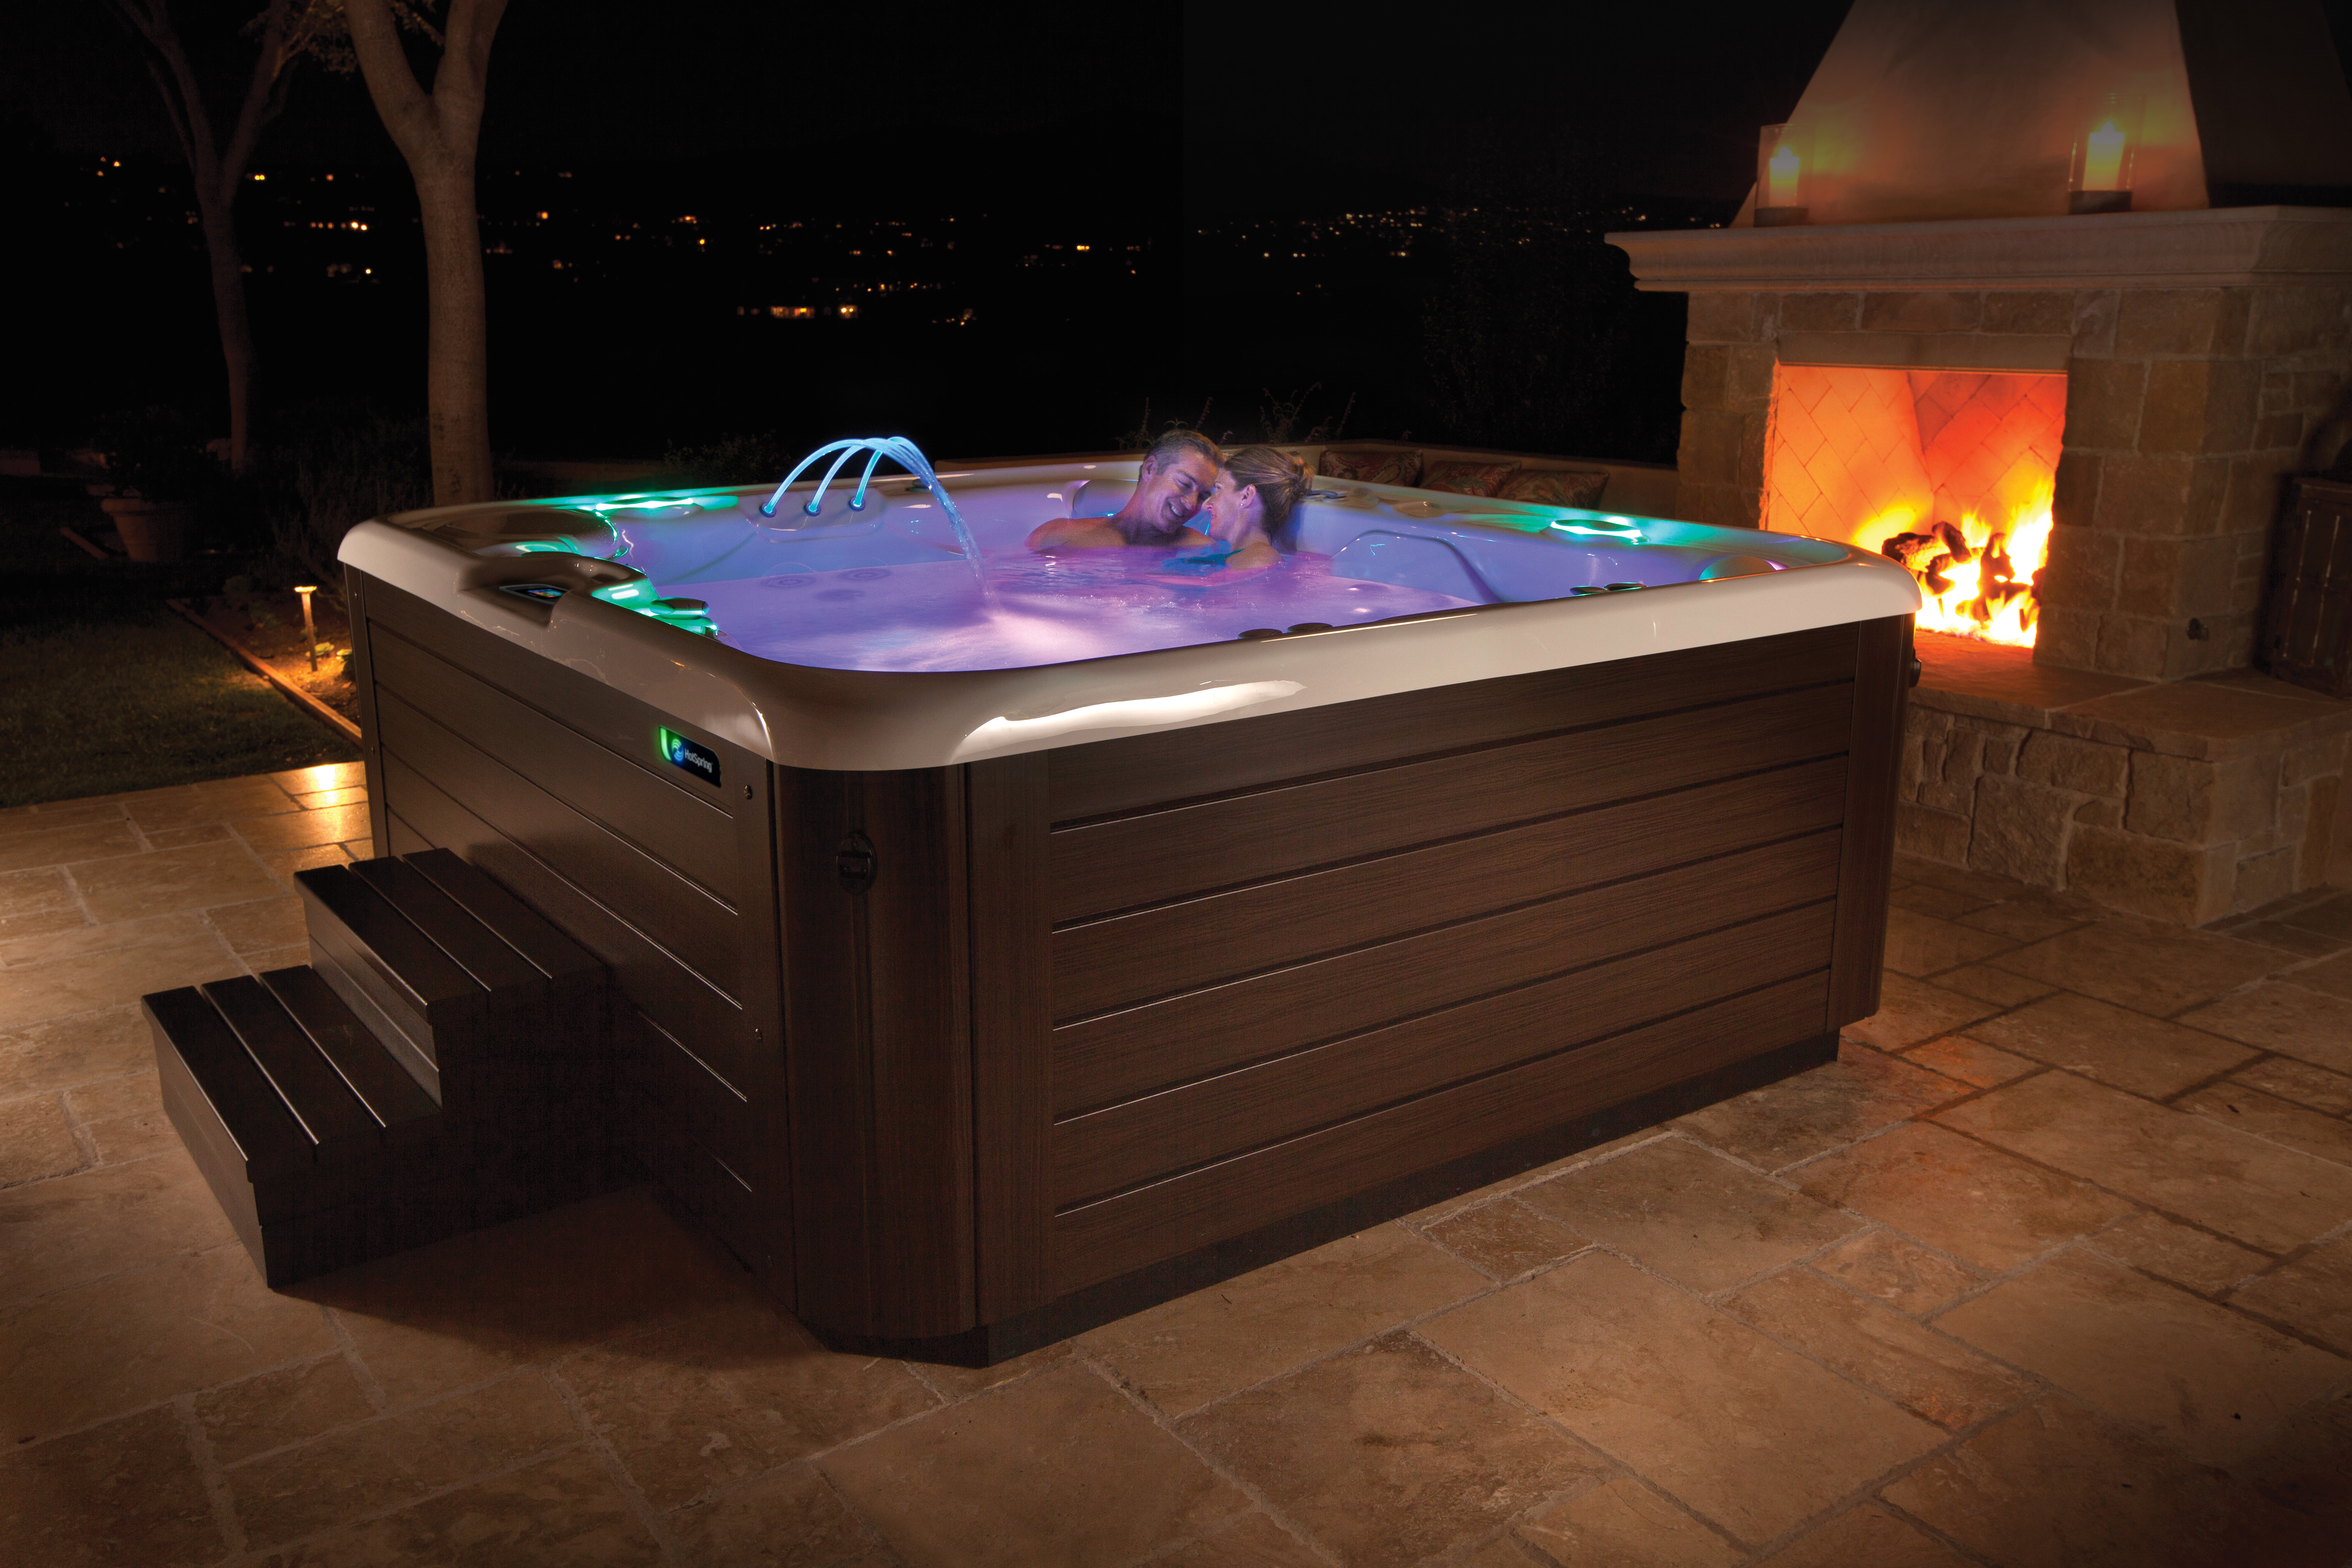 Factors to consider when choosing between entry-level or high-end hot tubs